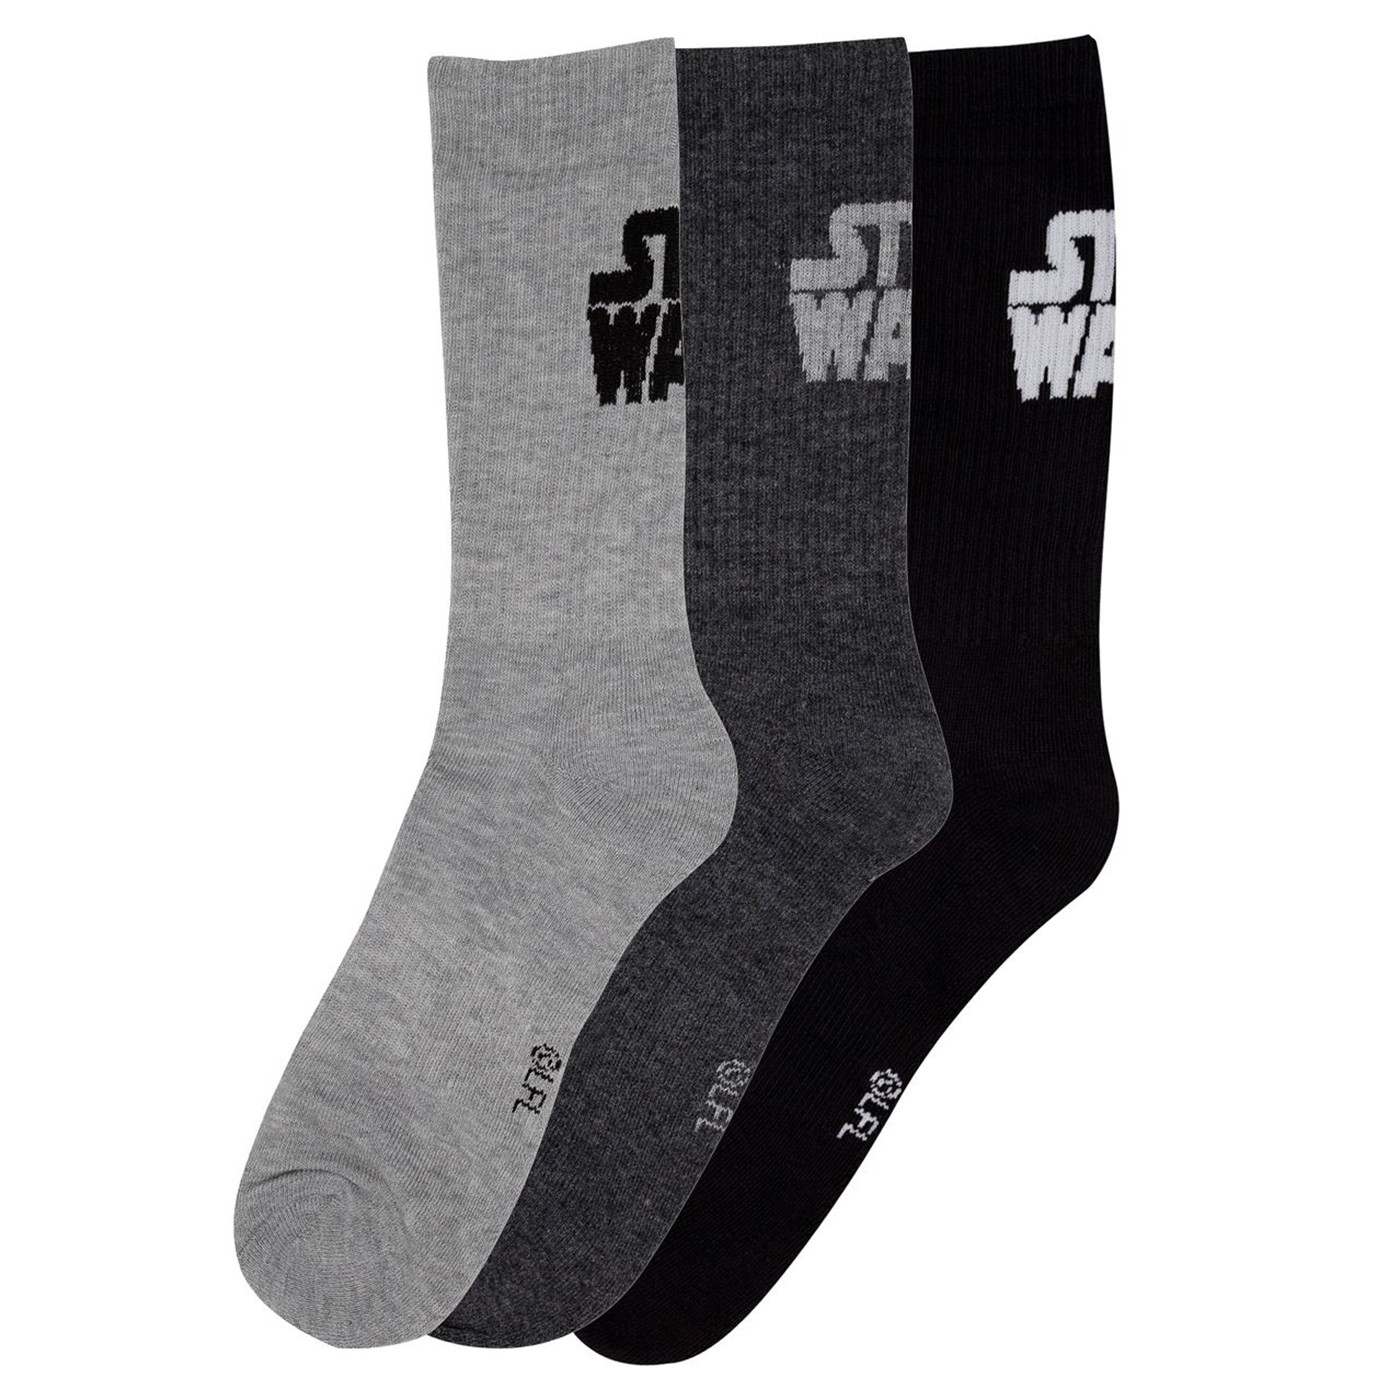 Star Wars Text 3-Pack Socks